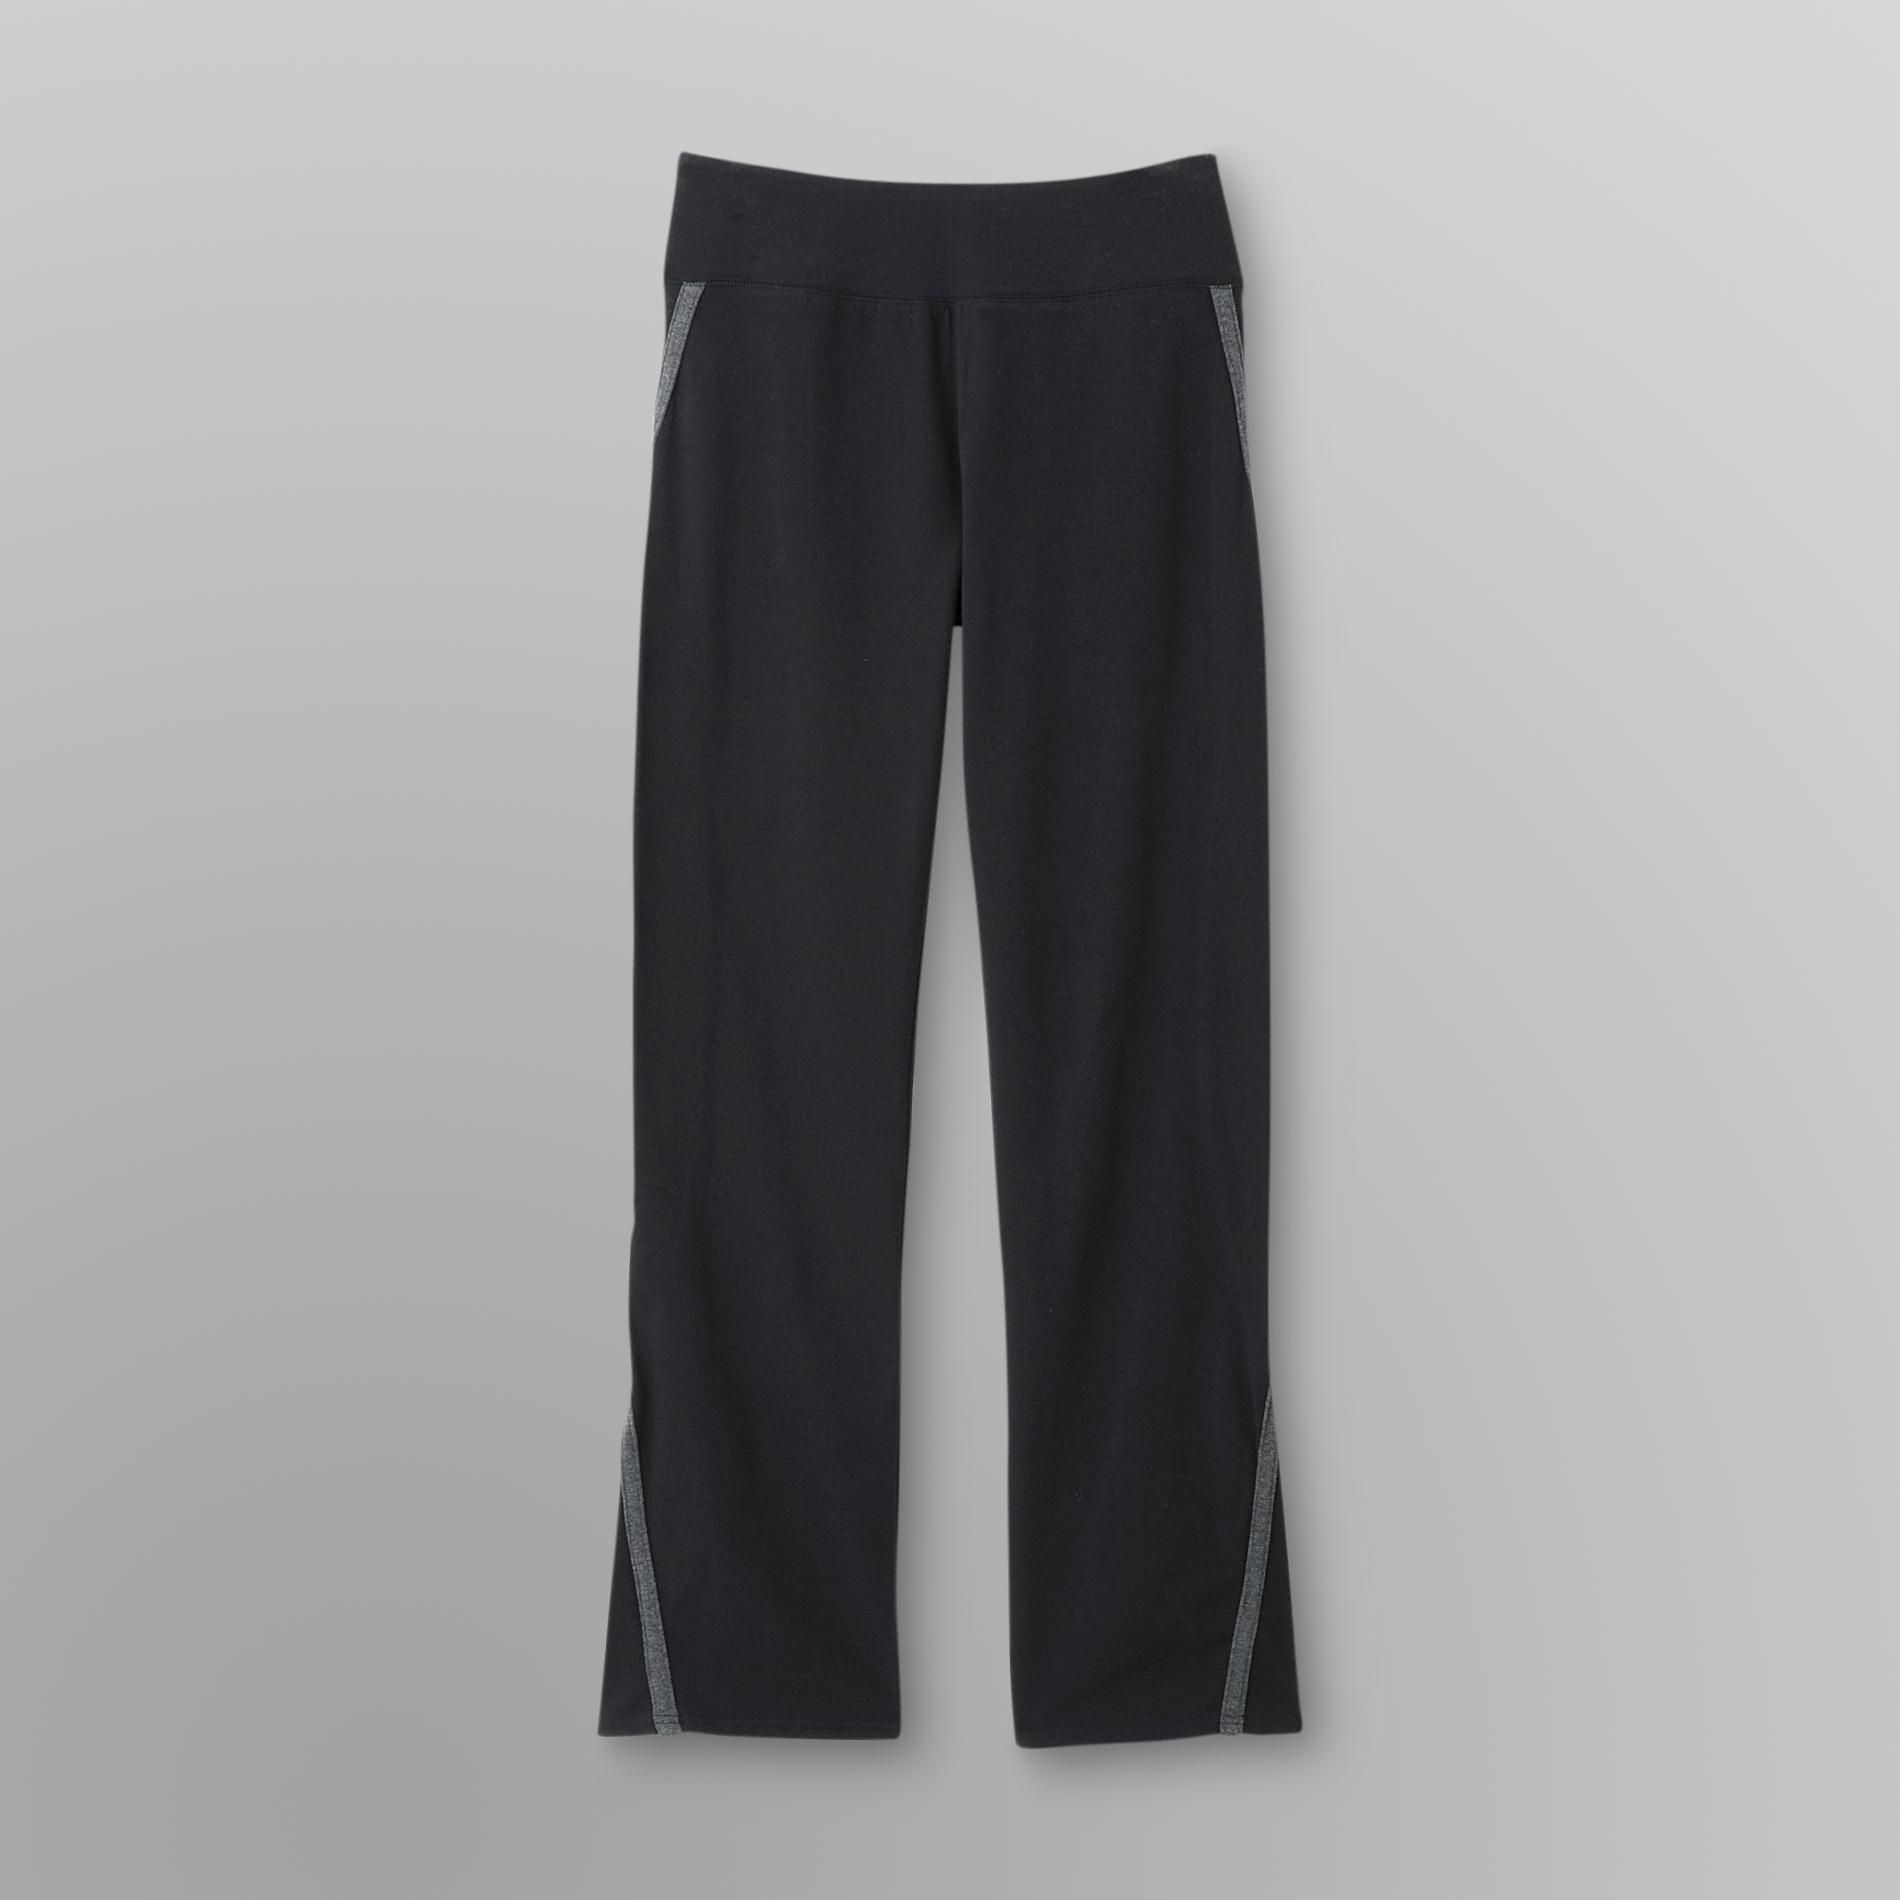 GV Sport Women's Bootcut Active Pants at Sears.com